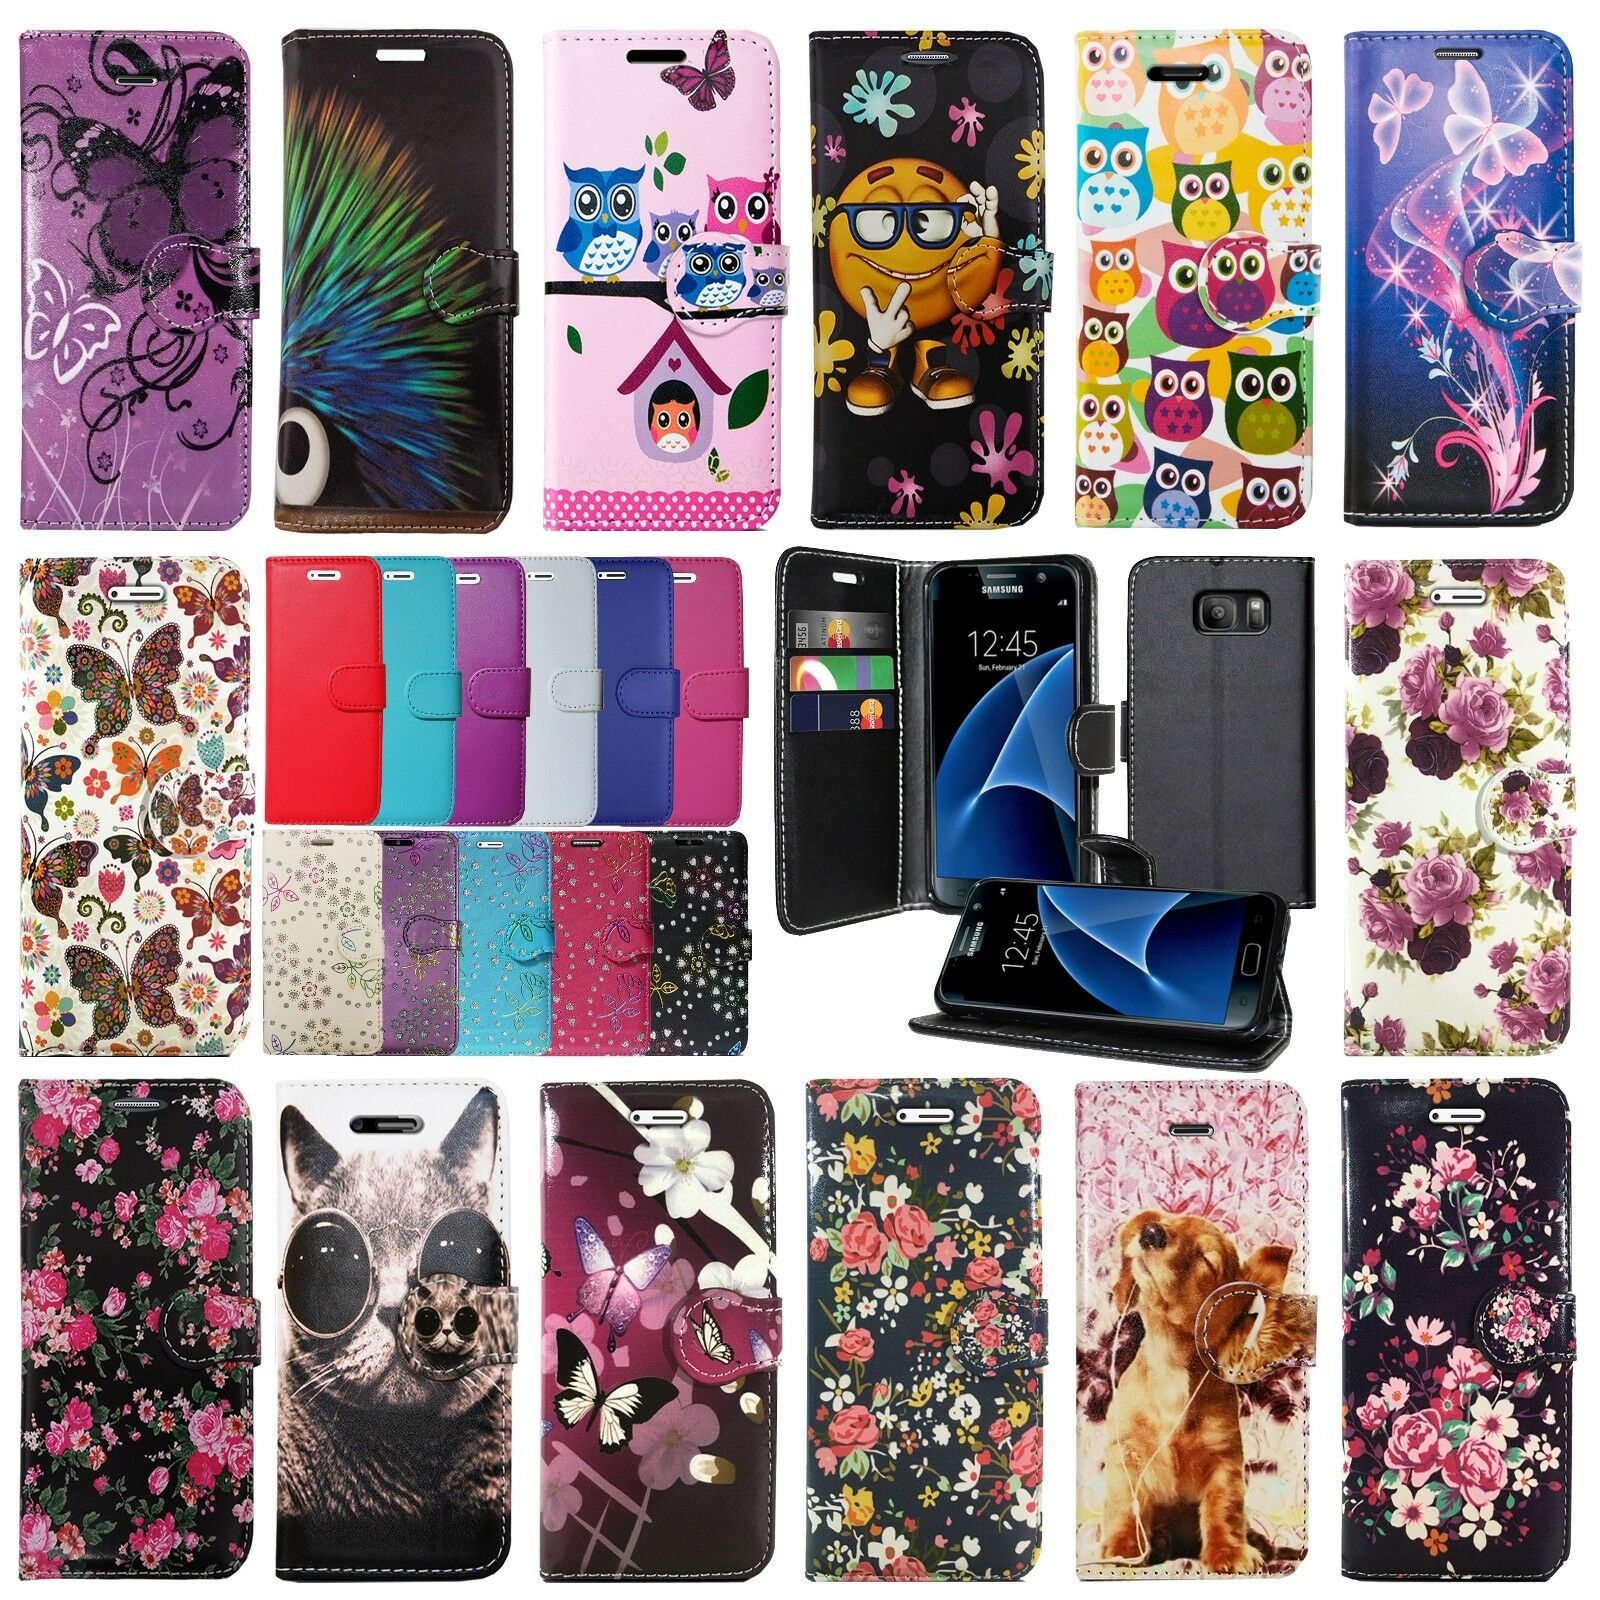 LEATHER WALLET BOOK FLIP PROTECT PHONE CASE FOR SAMSUNG GALAXY S8 S9 & S9 PLUS